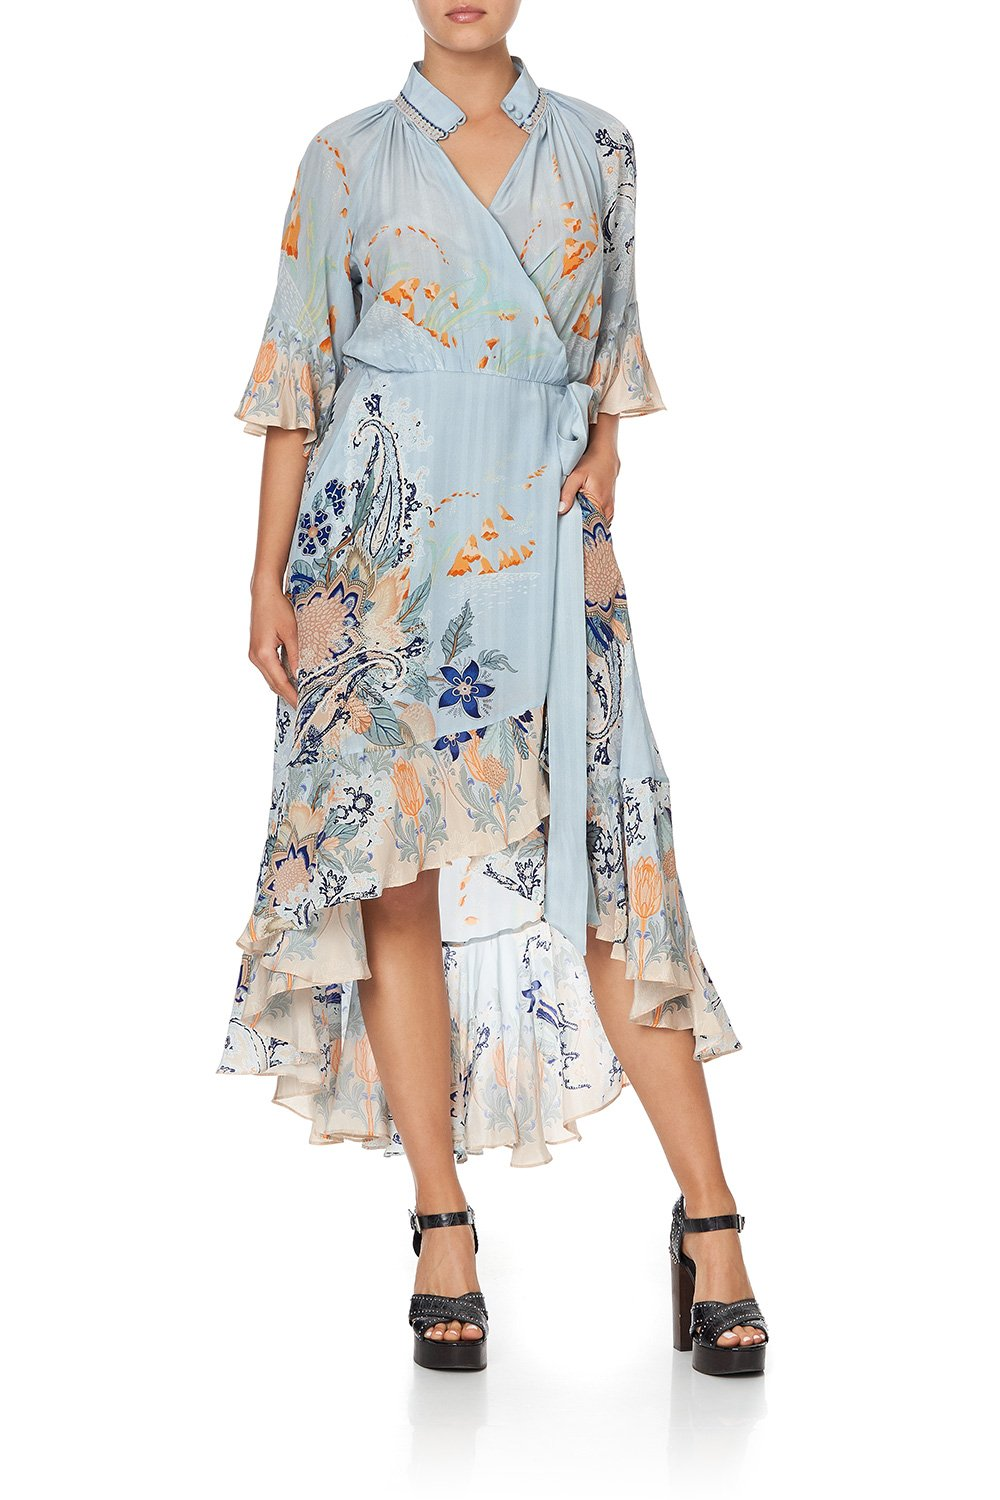 MIDI WRAP DRESS WITH RAGLAN SLEEVE FRASER FANTASIA